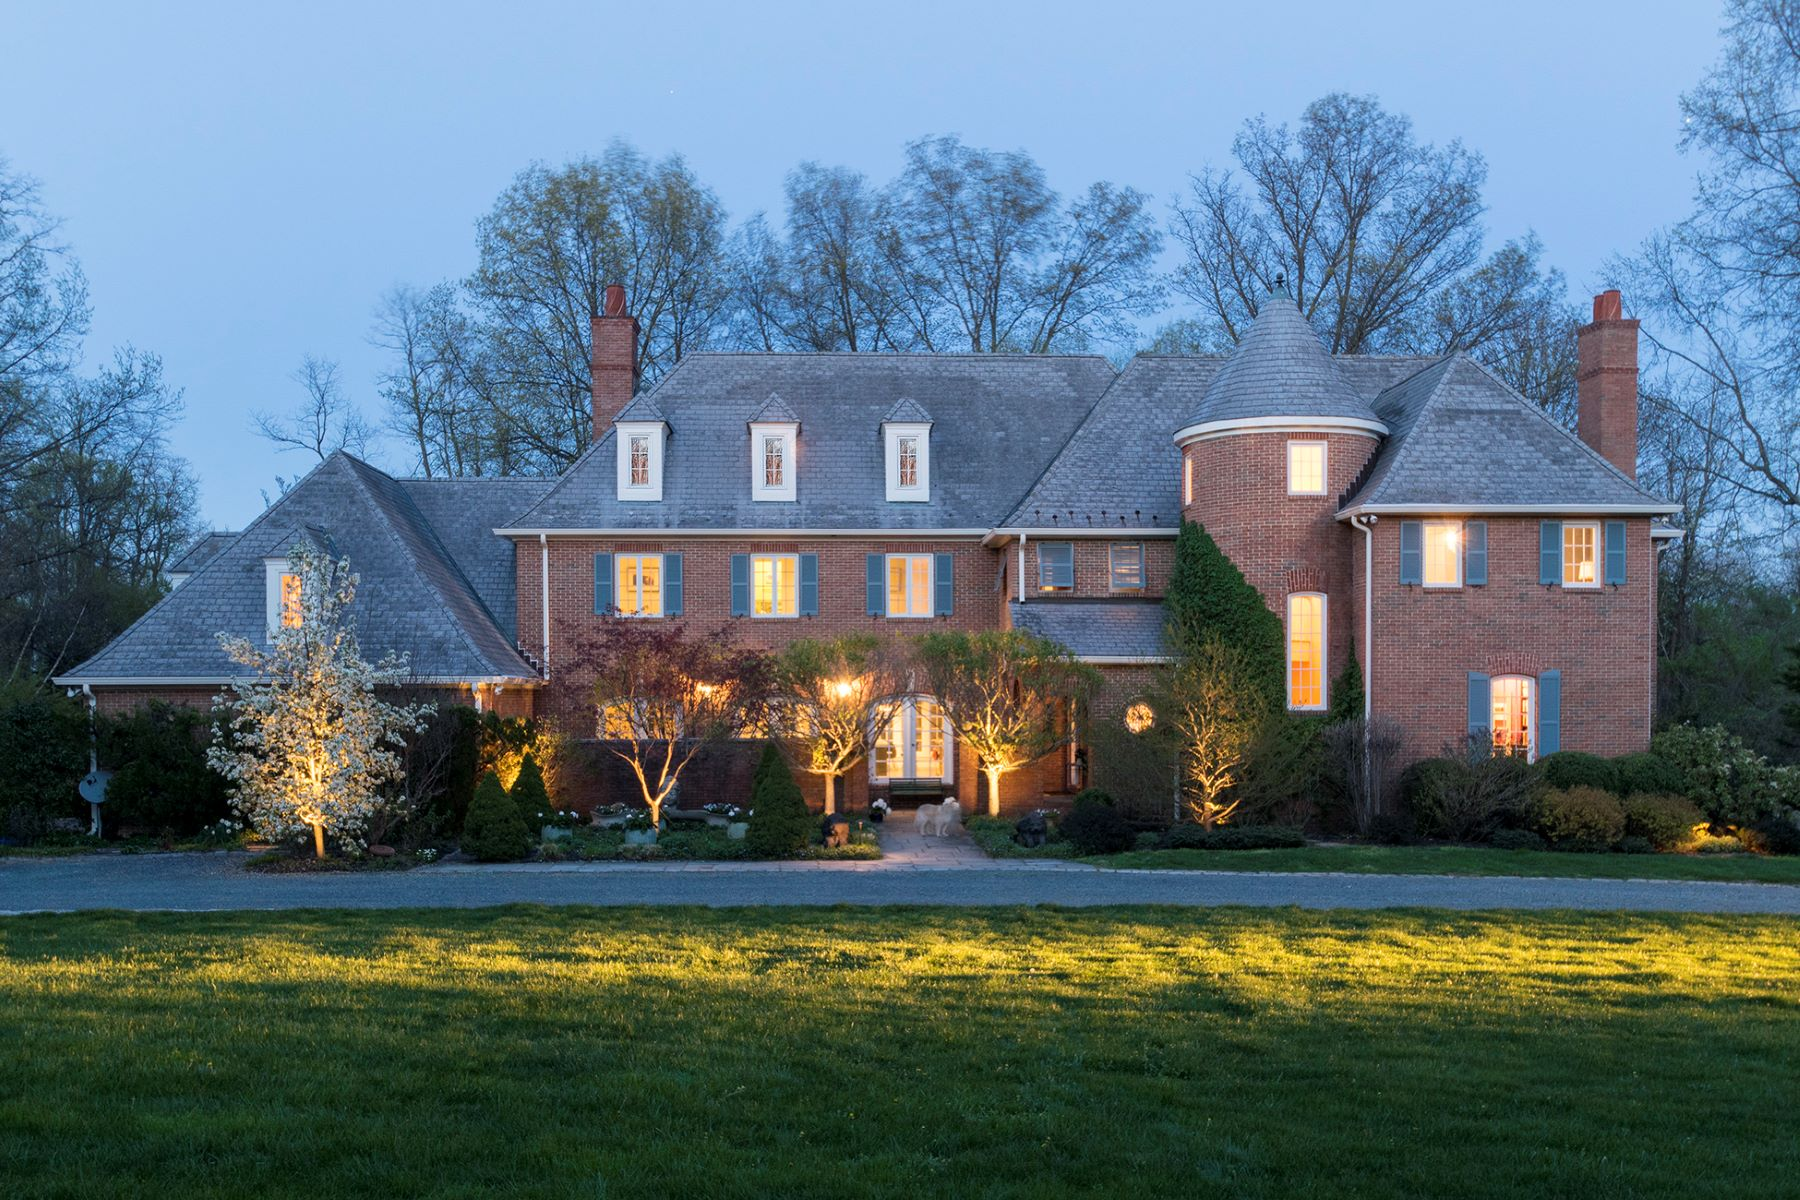 Casa Unifamiliar por un Venta en Elegant Manor House in a Park-Like Setting - Lawrence Township 3 Landfall Lane, Princeton, Nueva Jersey, 08540 Estados UnidosEn/Alrededor: Lawrence Township